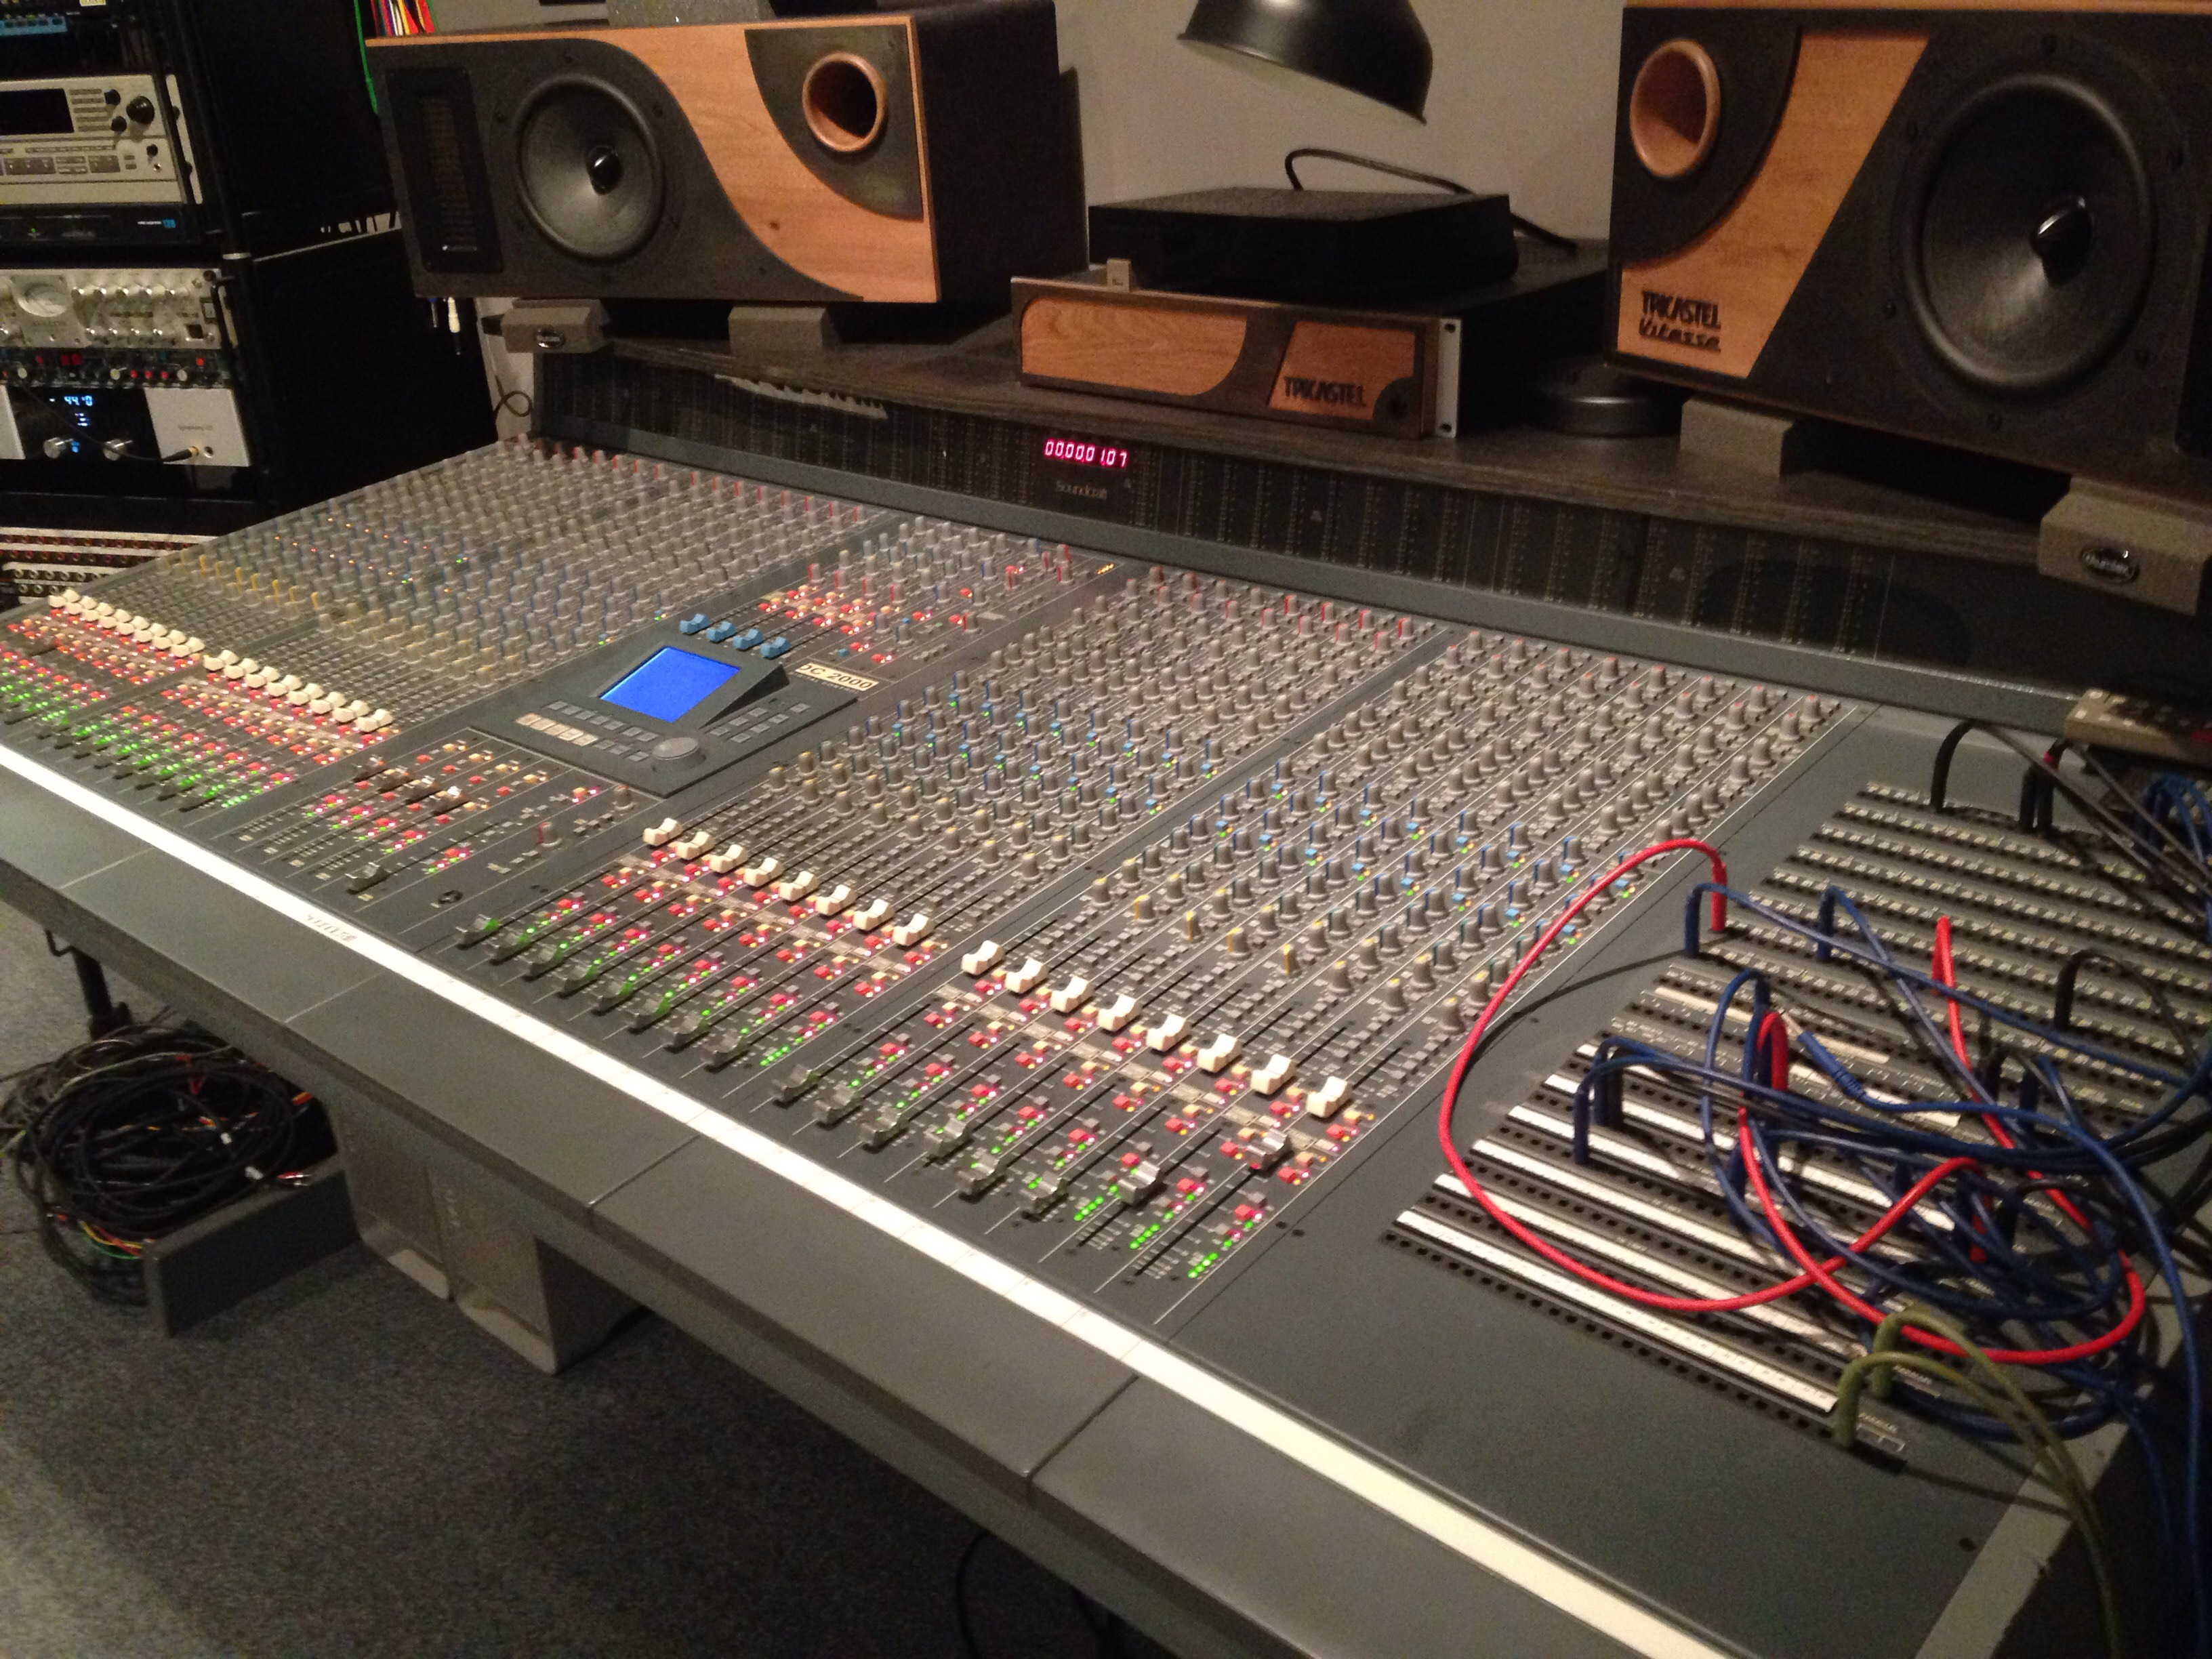 Soundcraft dc2000